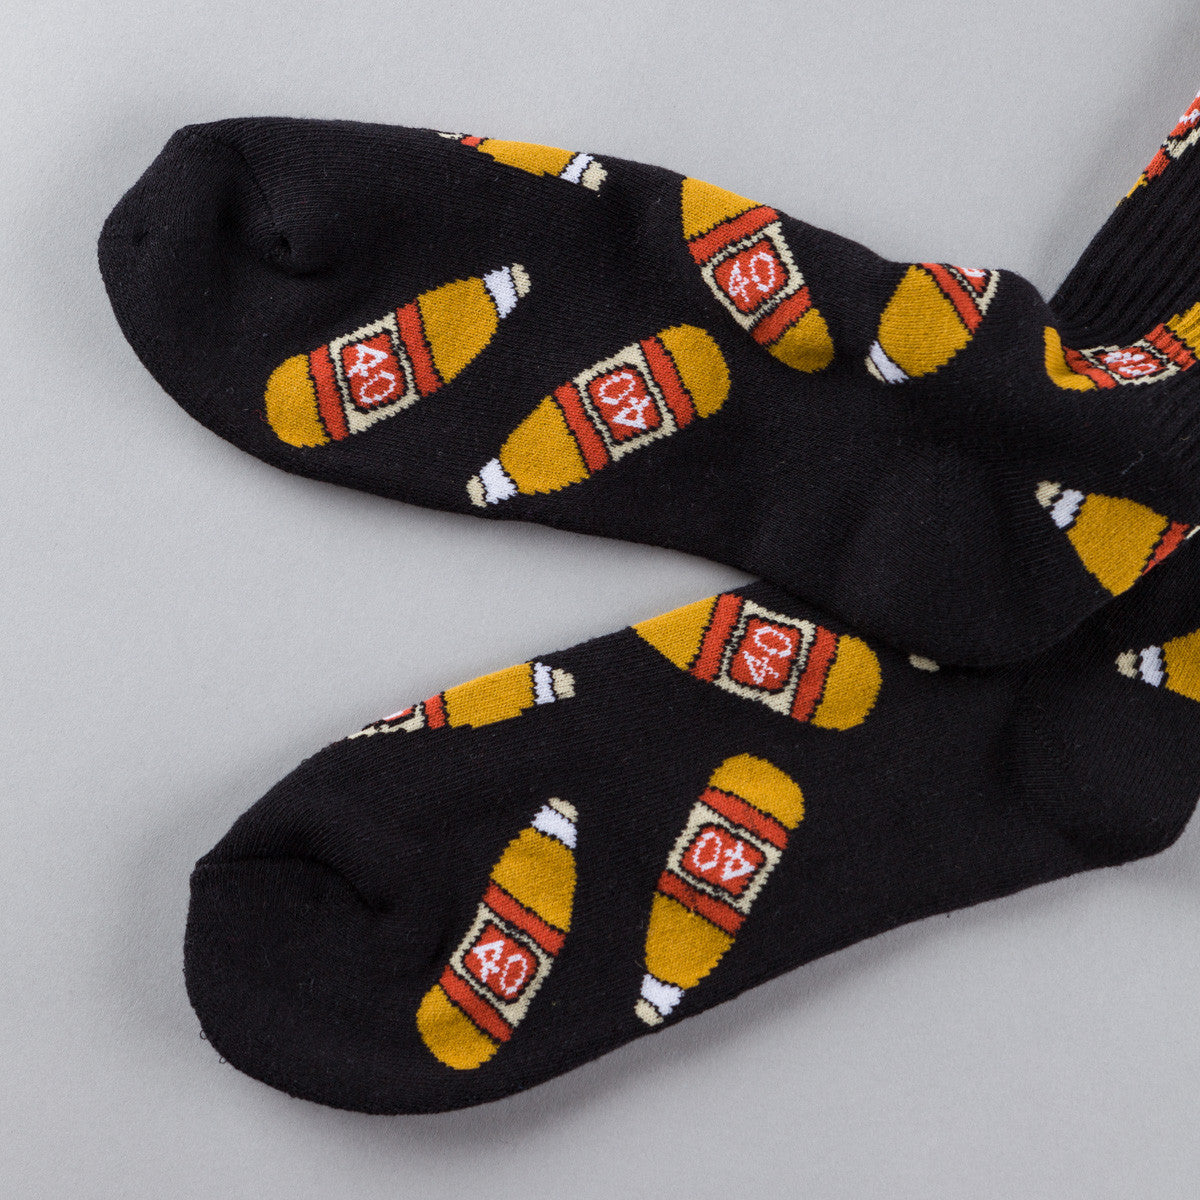 40s & Shorties 40s Socks - Black